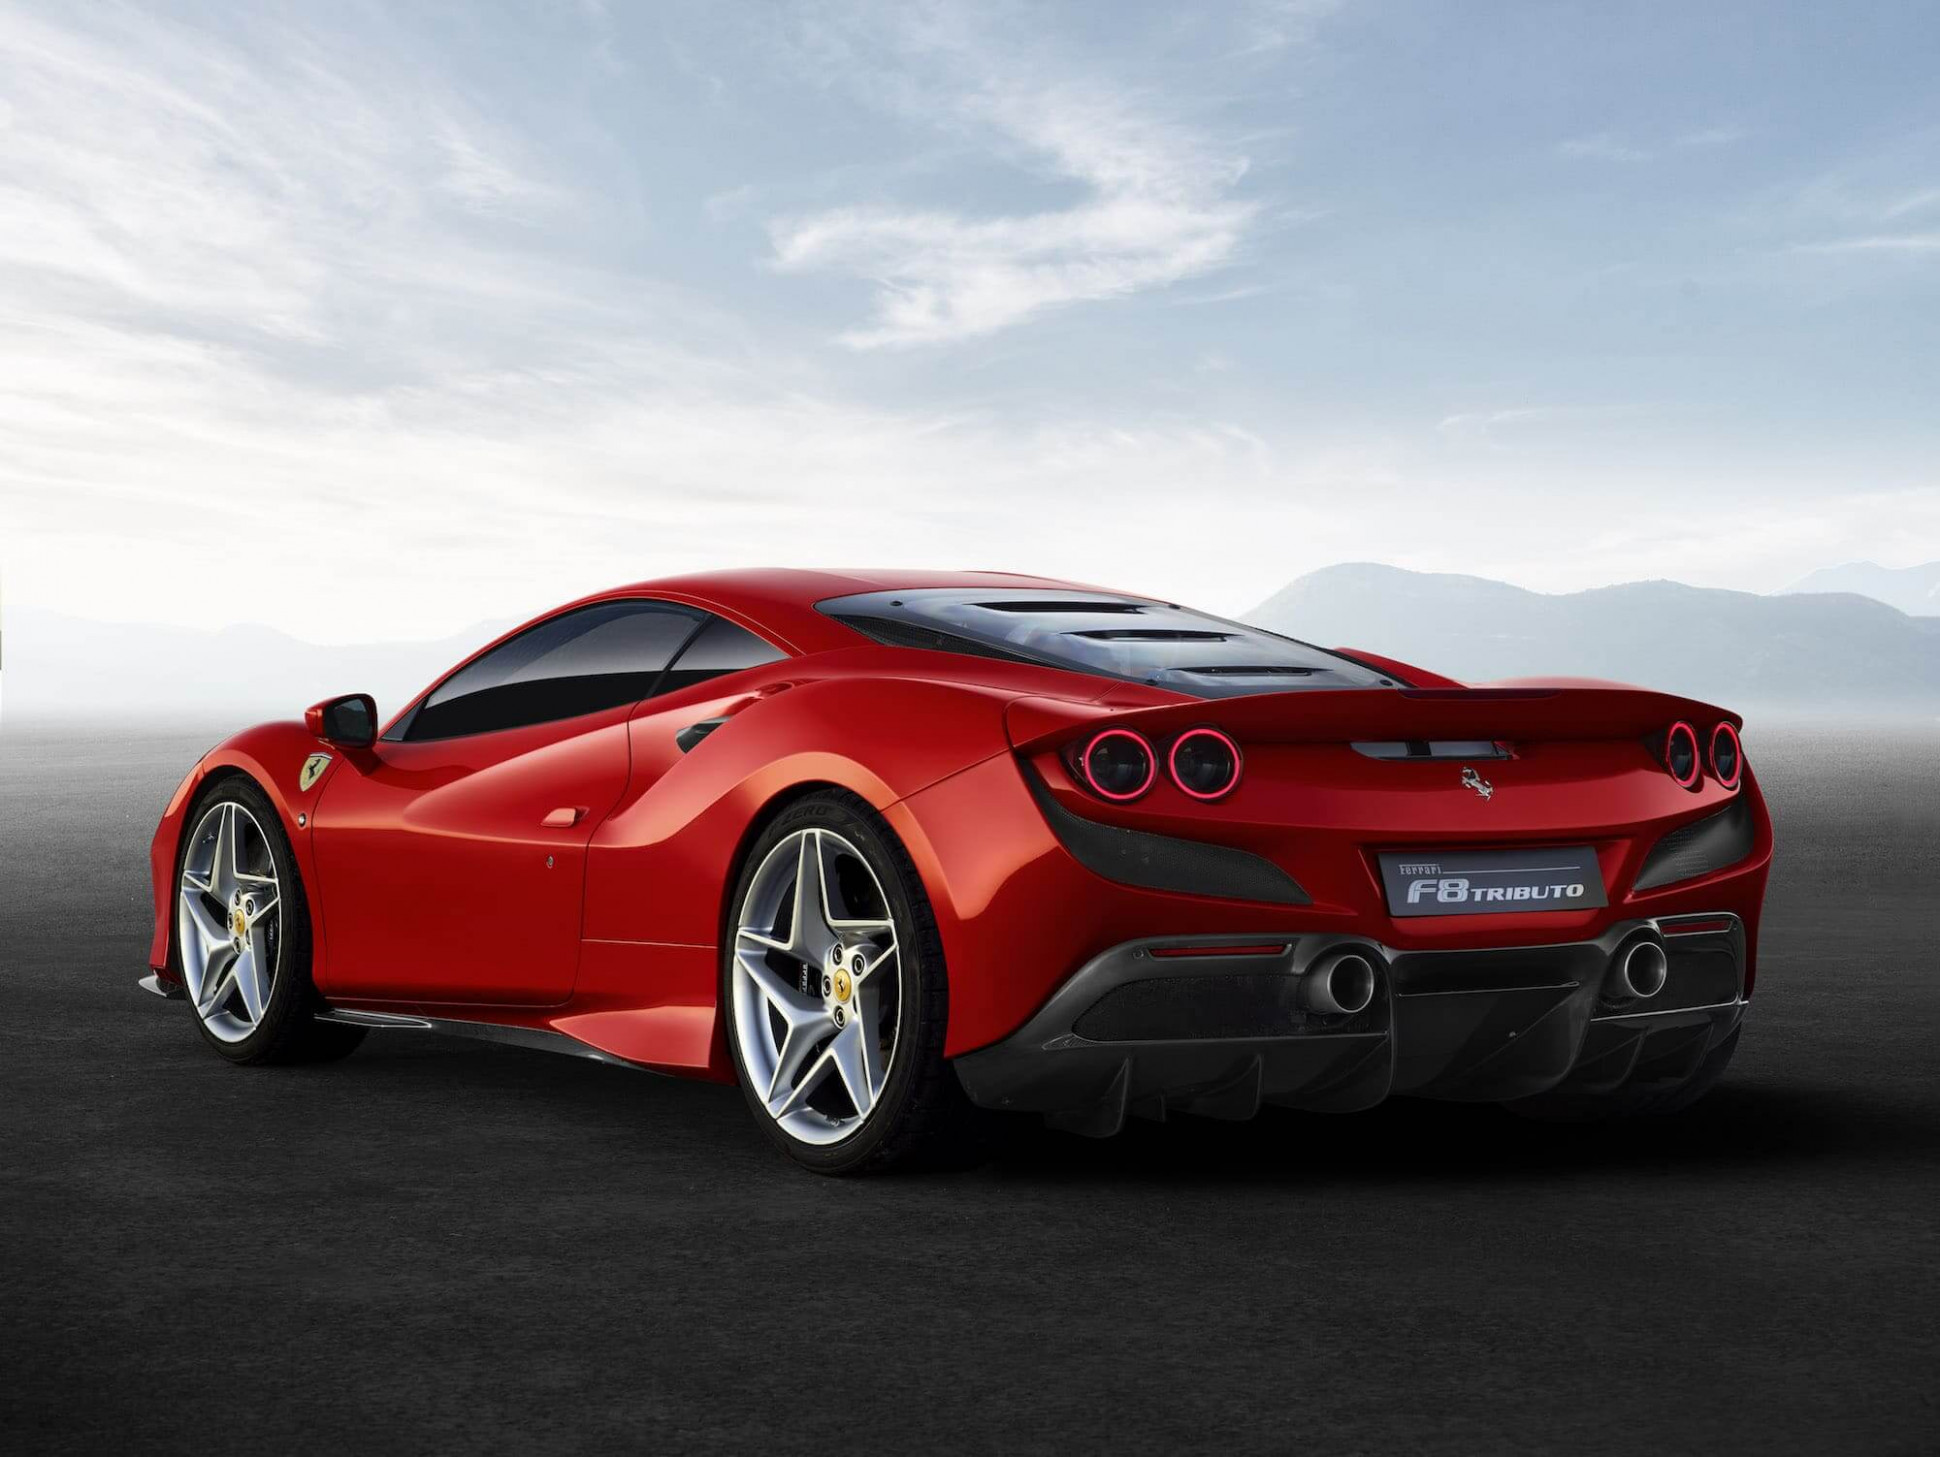 Ferrari To Reveal All-New Hybrid Supercar - AMENA Auto